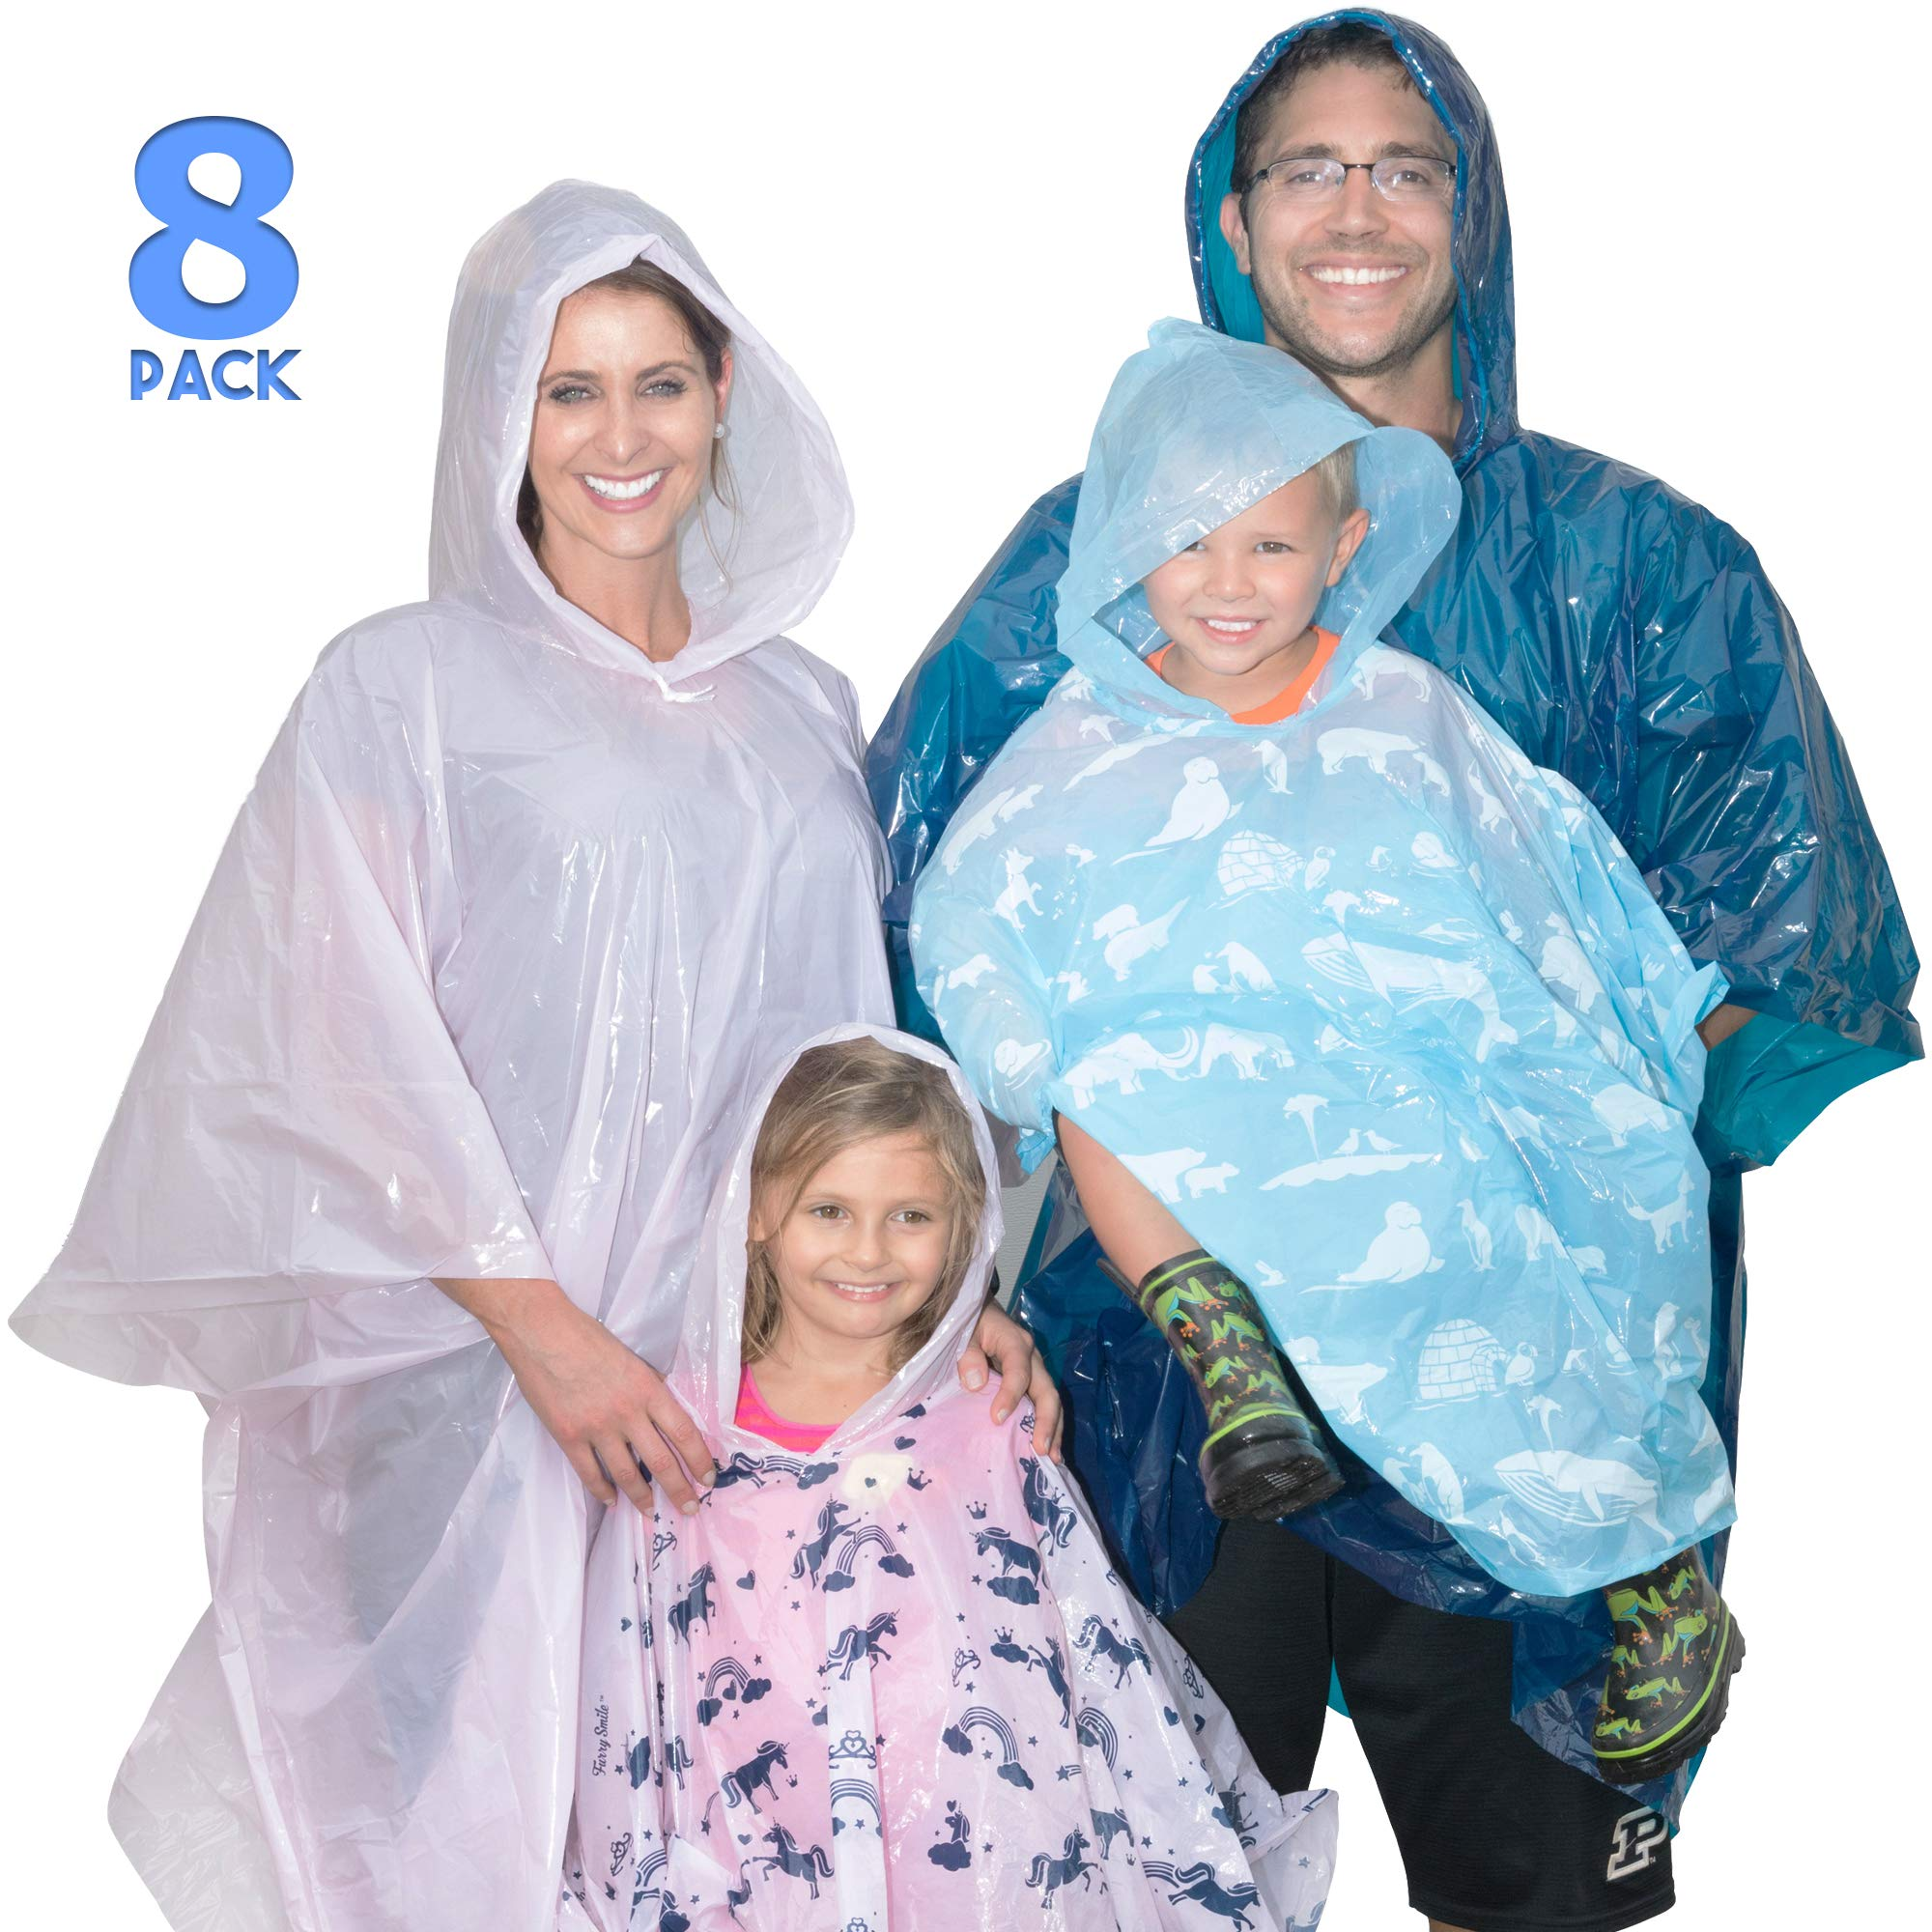 Disposable Rain Poncho Family Pack of 8. Emergency Rain Ponchos- Rain Gear for Hiking, Travel, Parks- Rain Capes Ponchos with 4 Hooded Ponchos for Adults, 4 Kids Ponchos with Fun Designs by Furry Smile